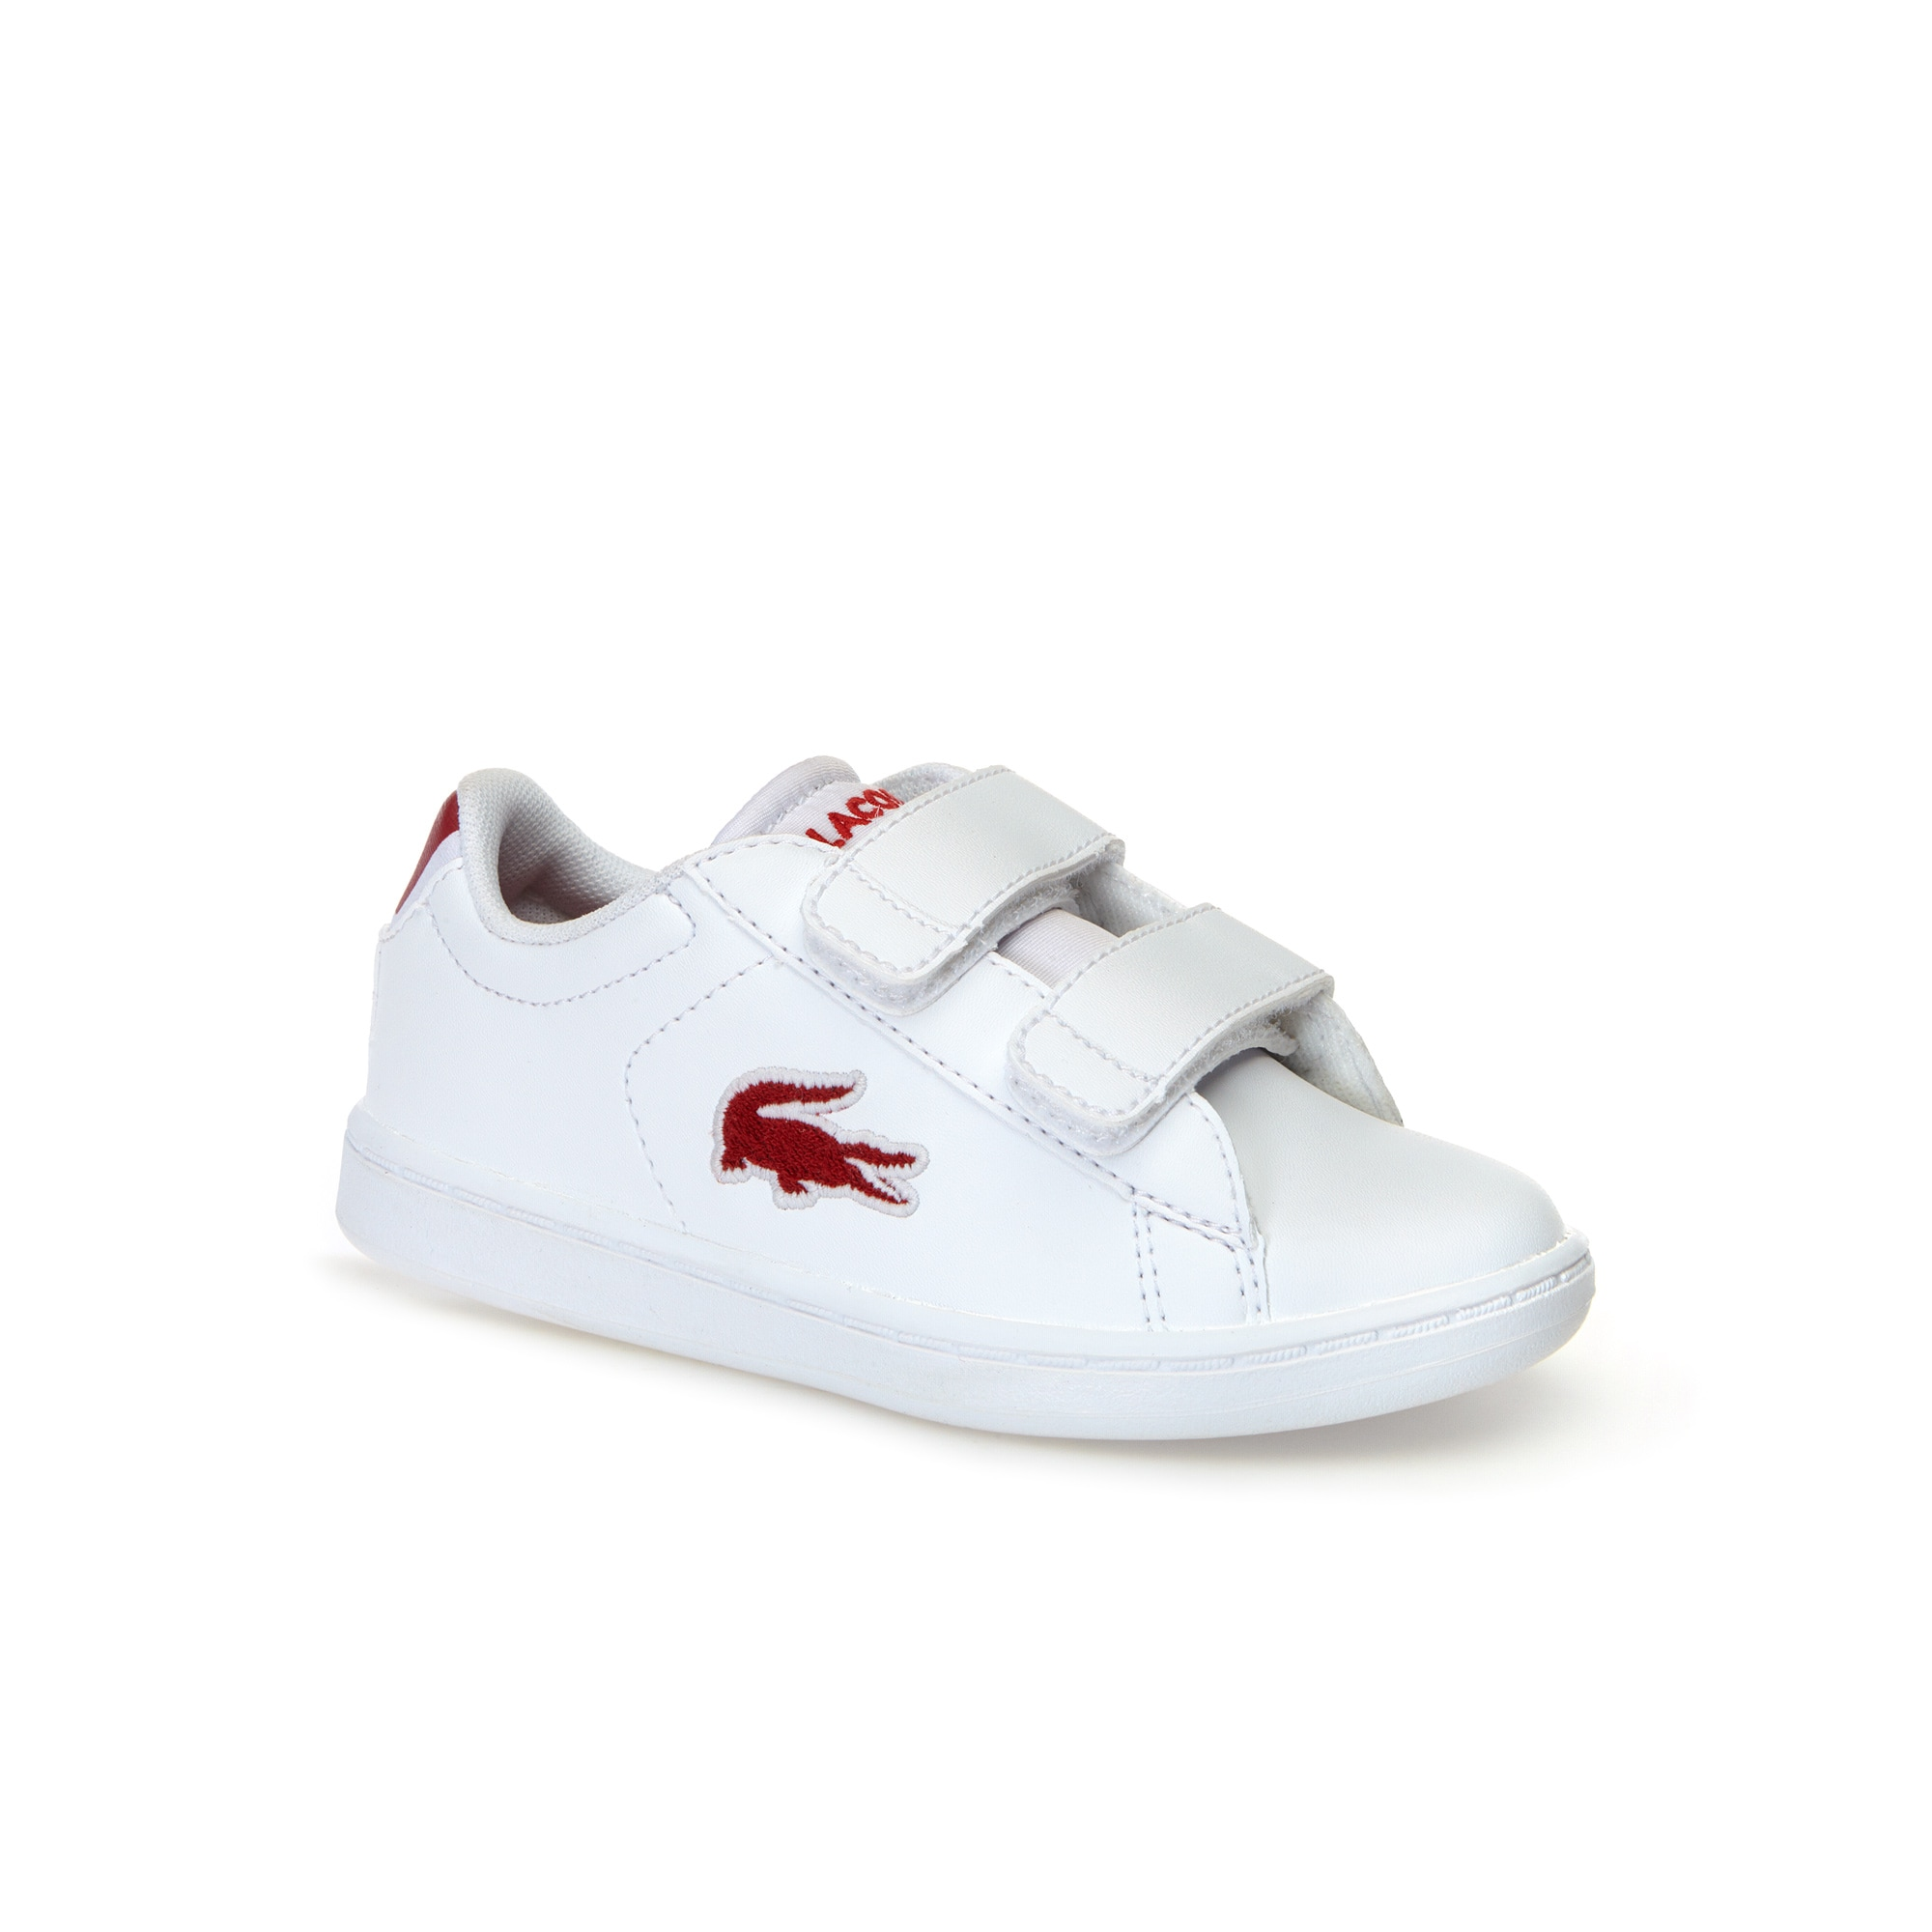 Infants' Carnaby Evo White Synthetic and Textile Trainers